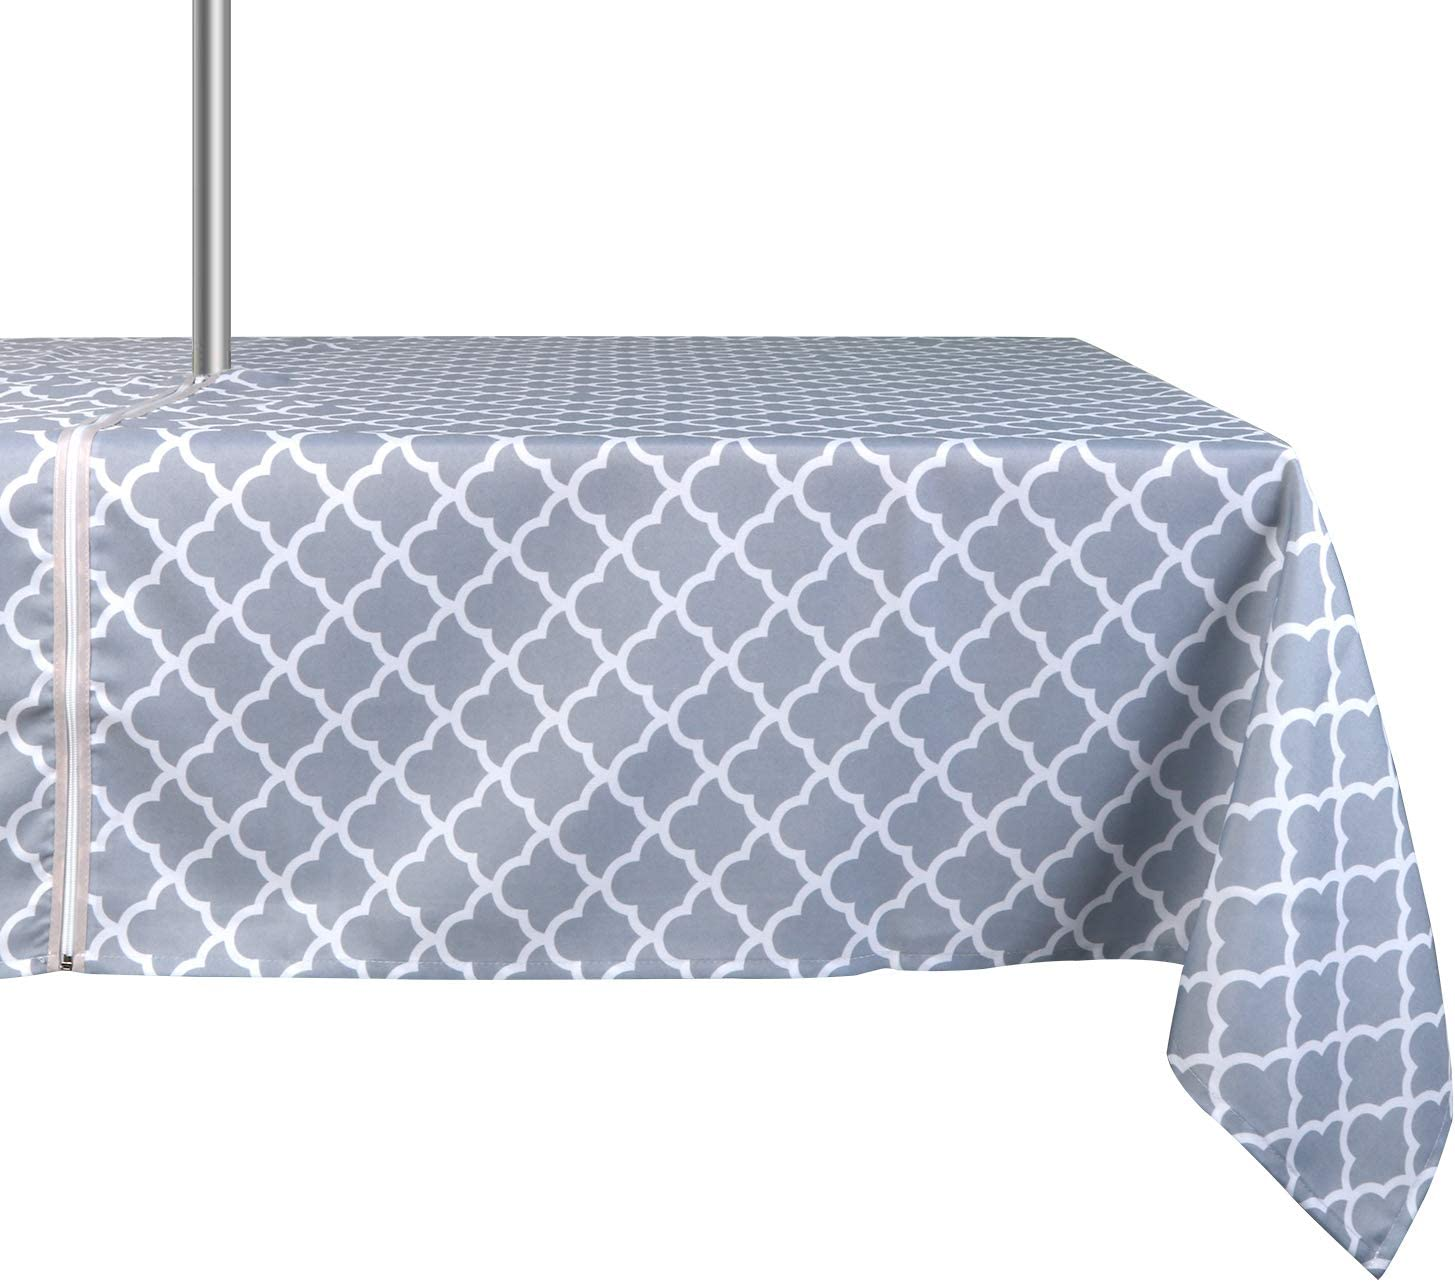 ColorBird Elegant Trellis Tablecloth Waterproof Spillproof Polyester Fabric Table Cover with Zipper Umbrella Hole for Patio Garden Tabletop Decor, 60 x 84 Inch, Zippered, Light Gray